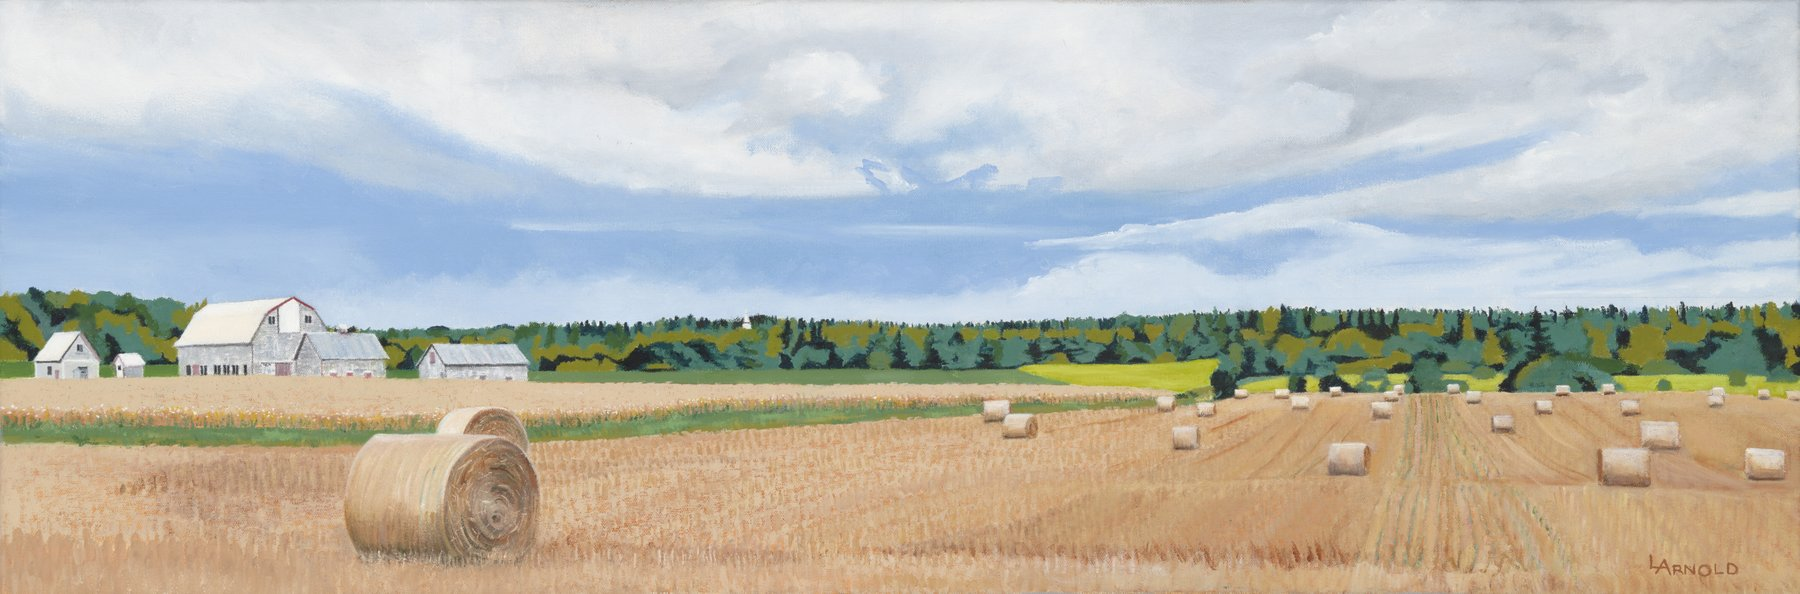 PEI Farm With Hay Bales, 12x36